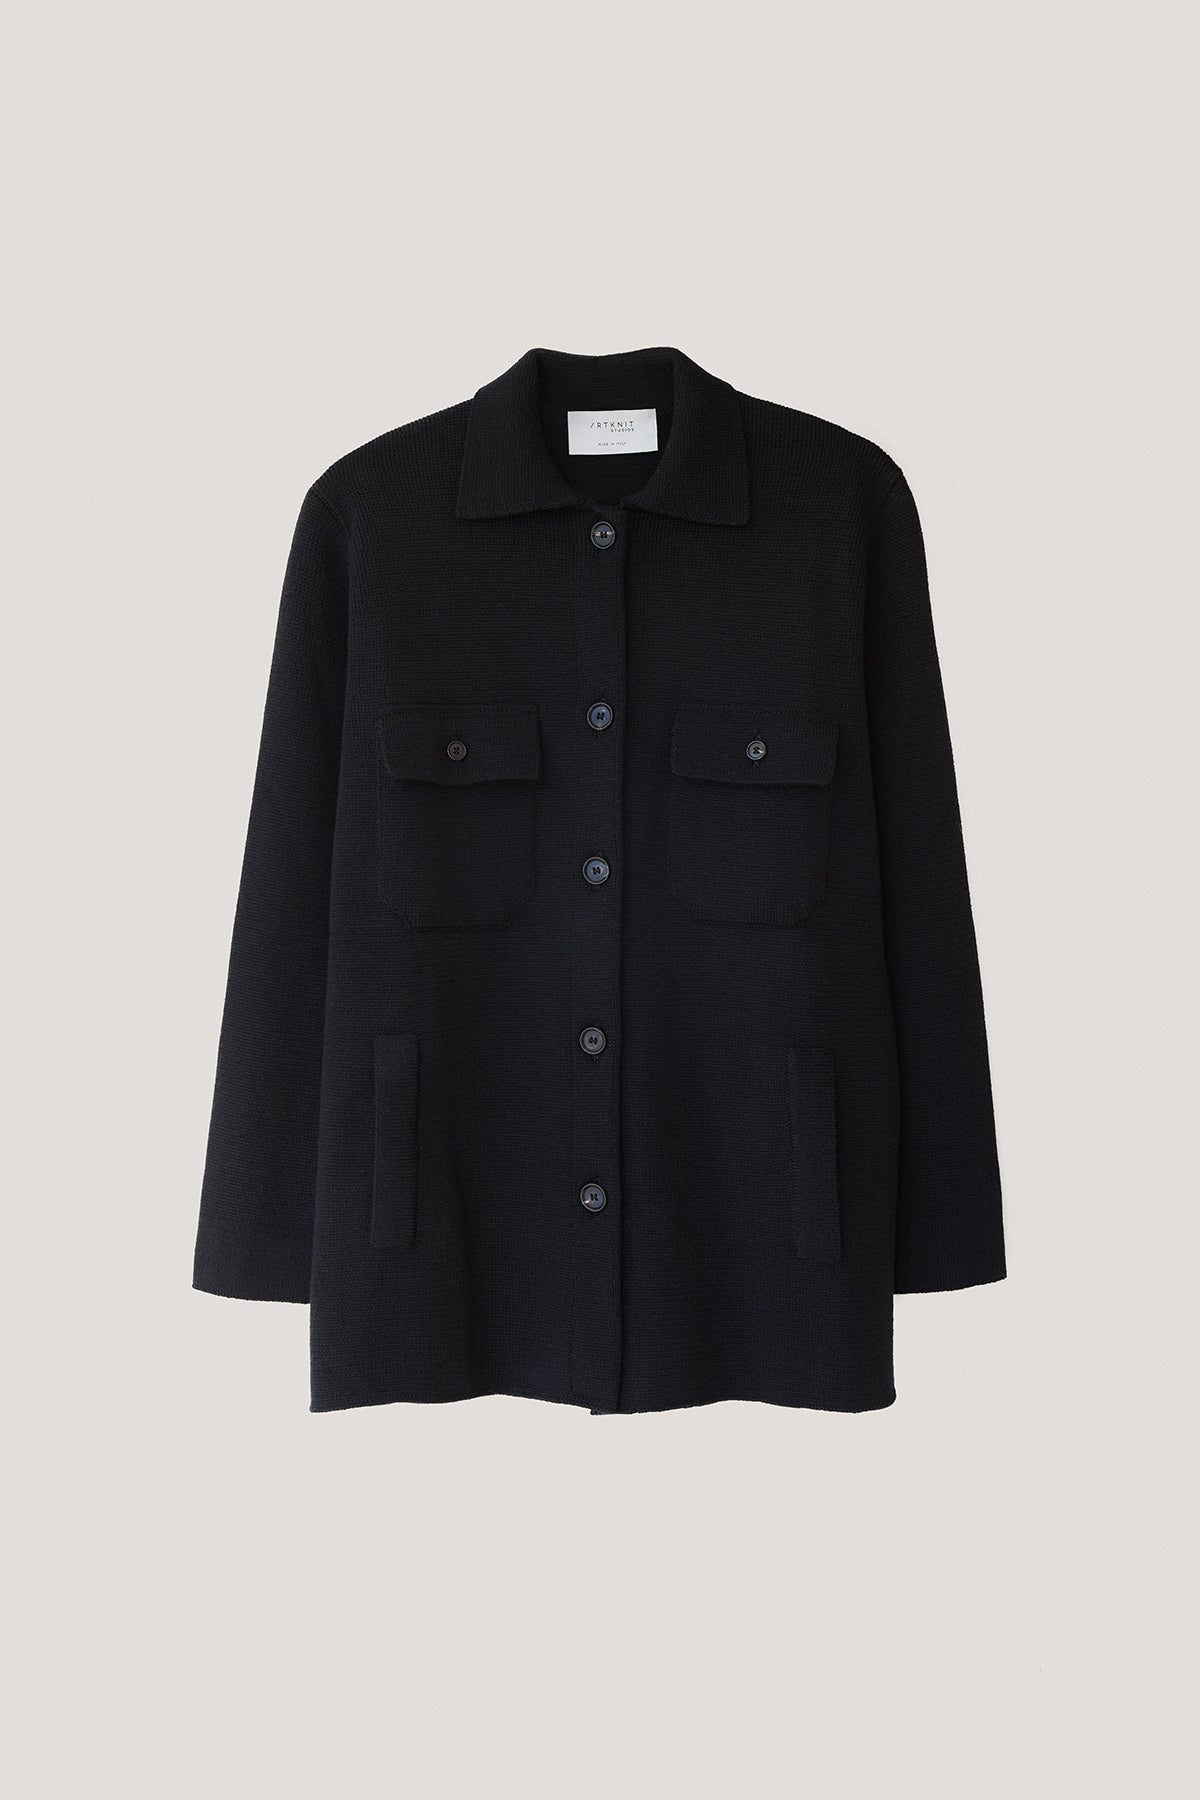 The Wool Overshirt - Black